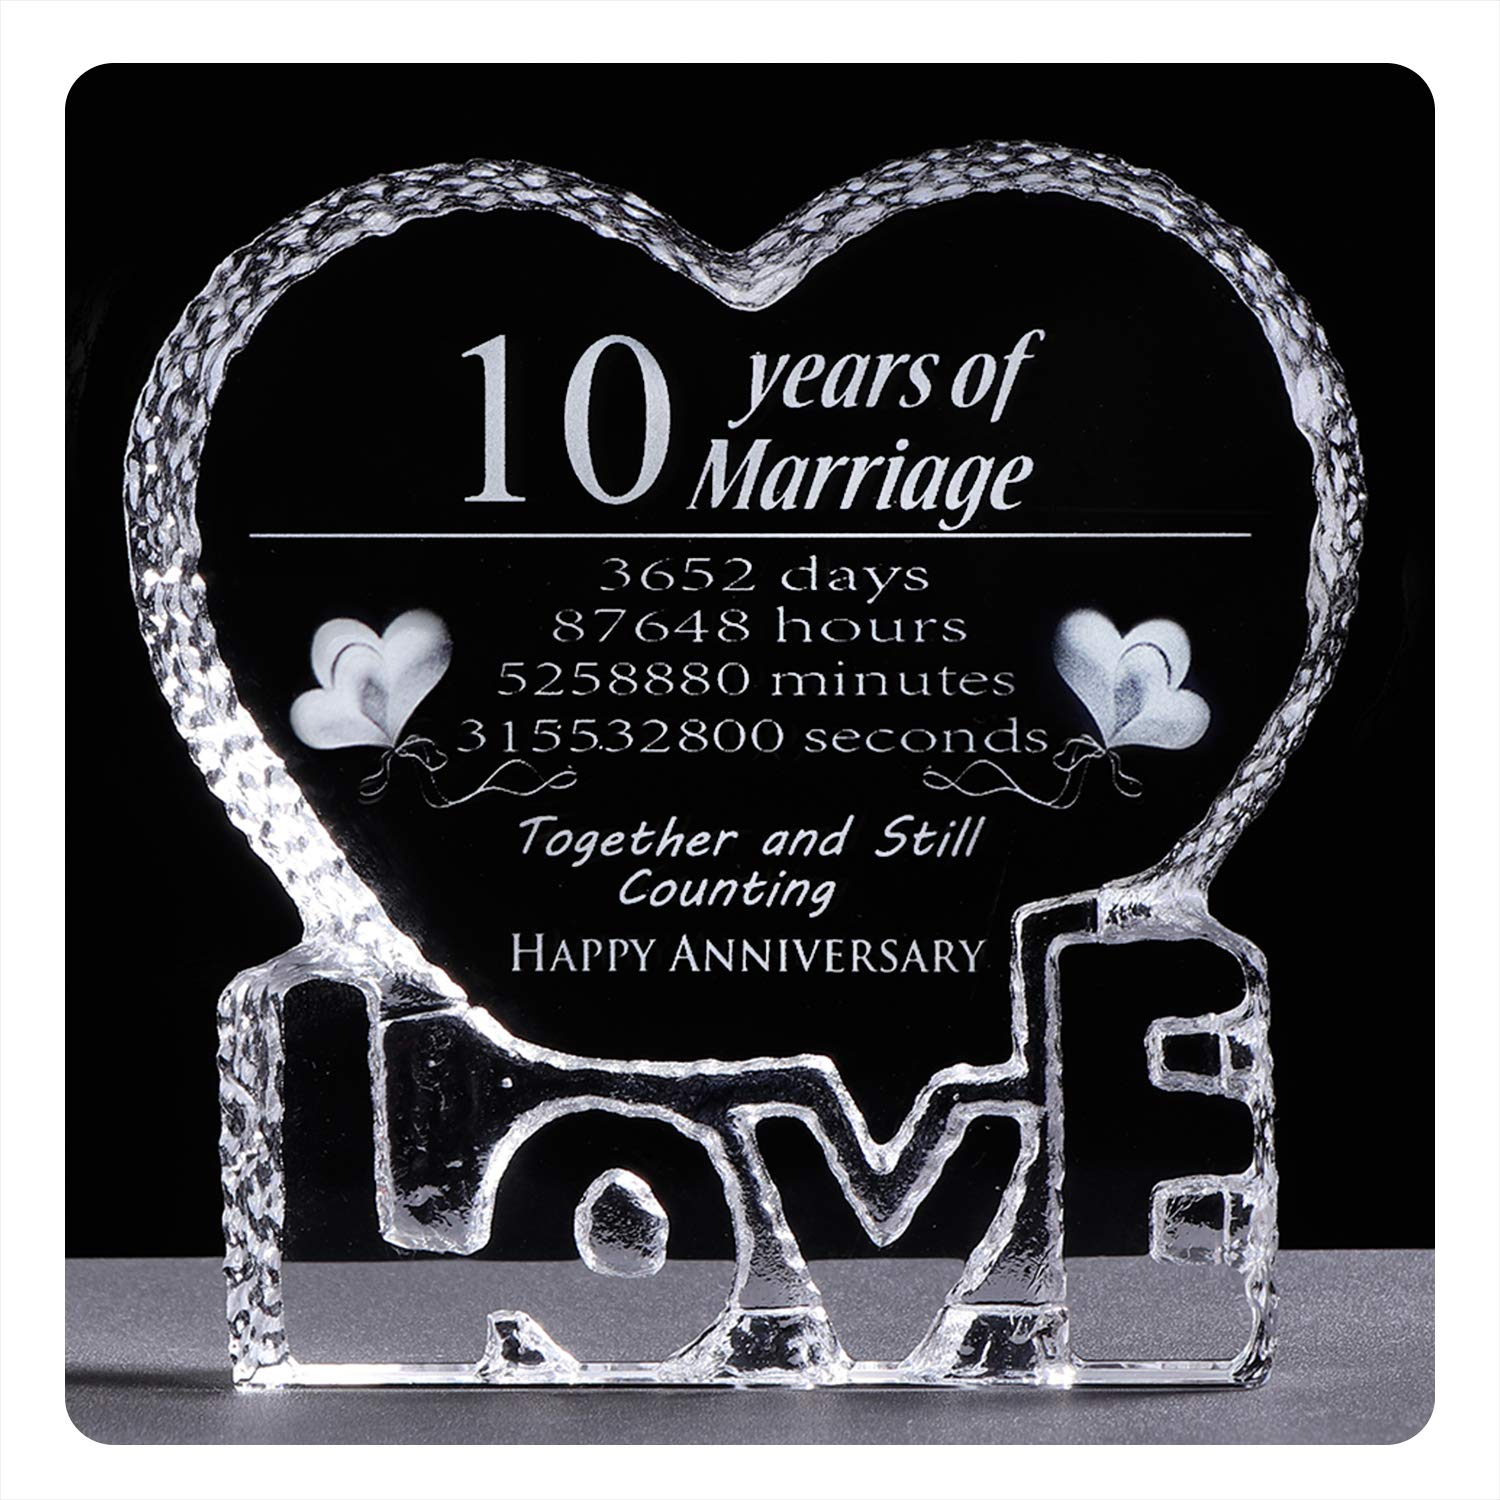 YWHL 10 Year Crystal 10th Wedding Anniversary Paperweight Keepsake Gifts for Her Wife Girlfriend Him Husband by YWHL